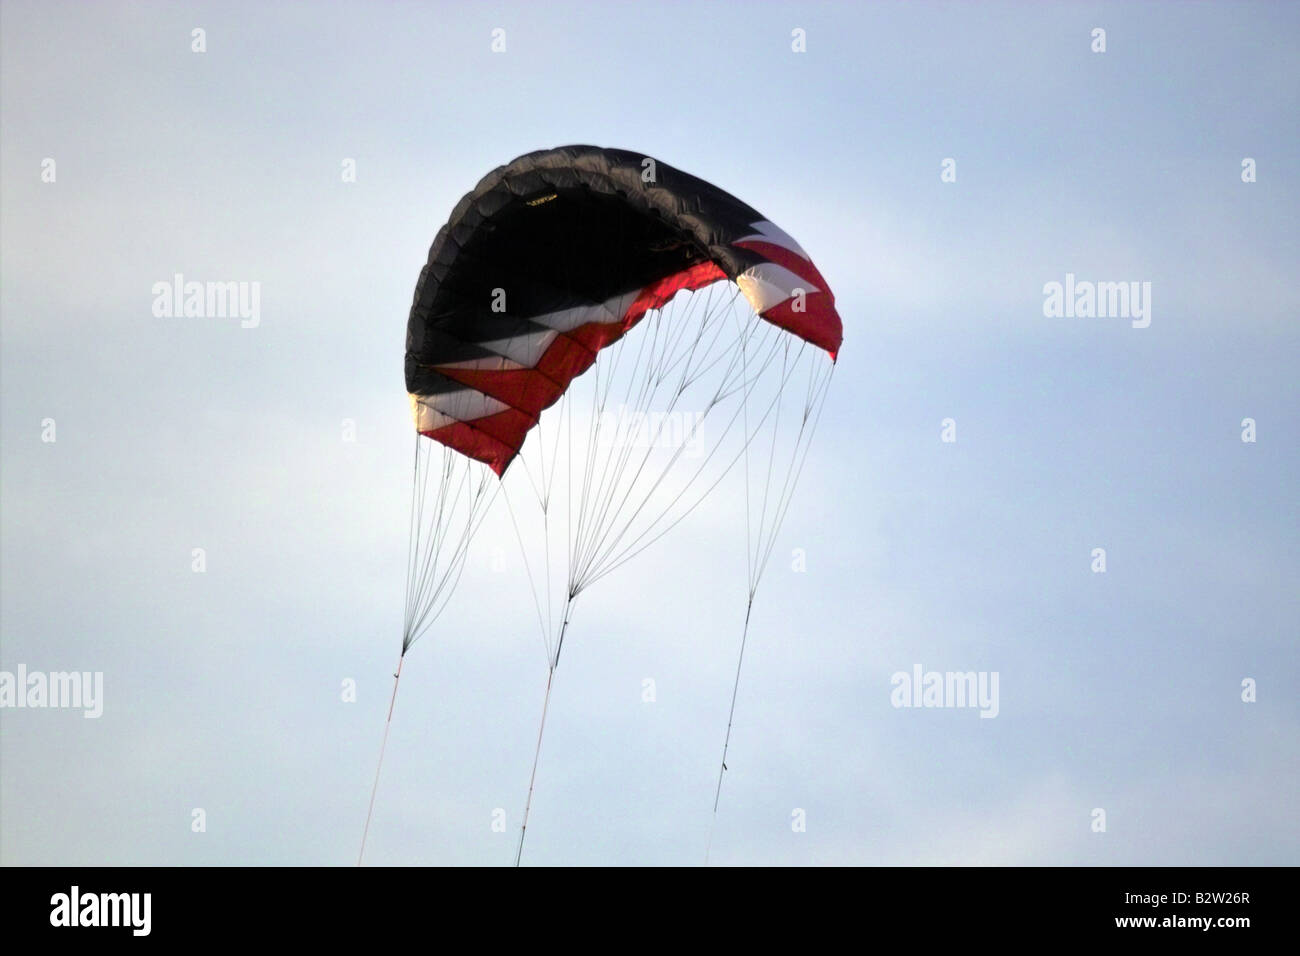 Black white and red flying kite - Stock Image